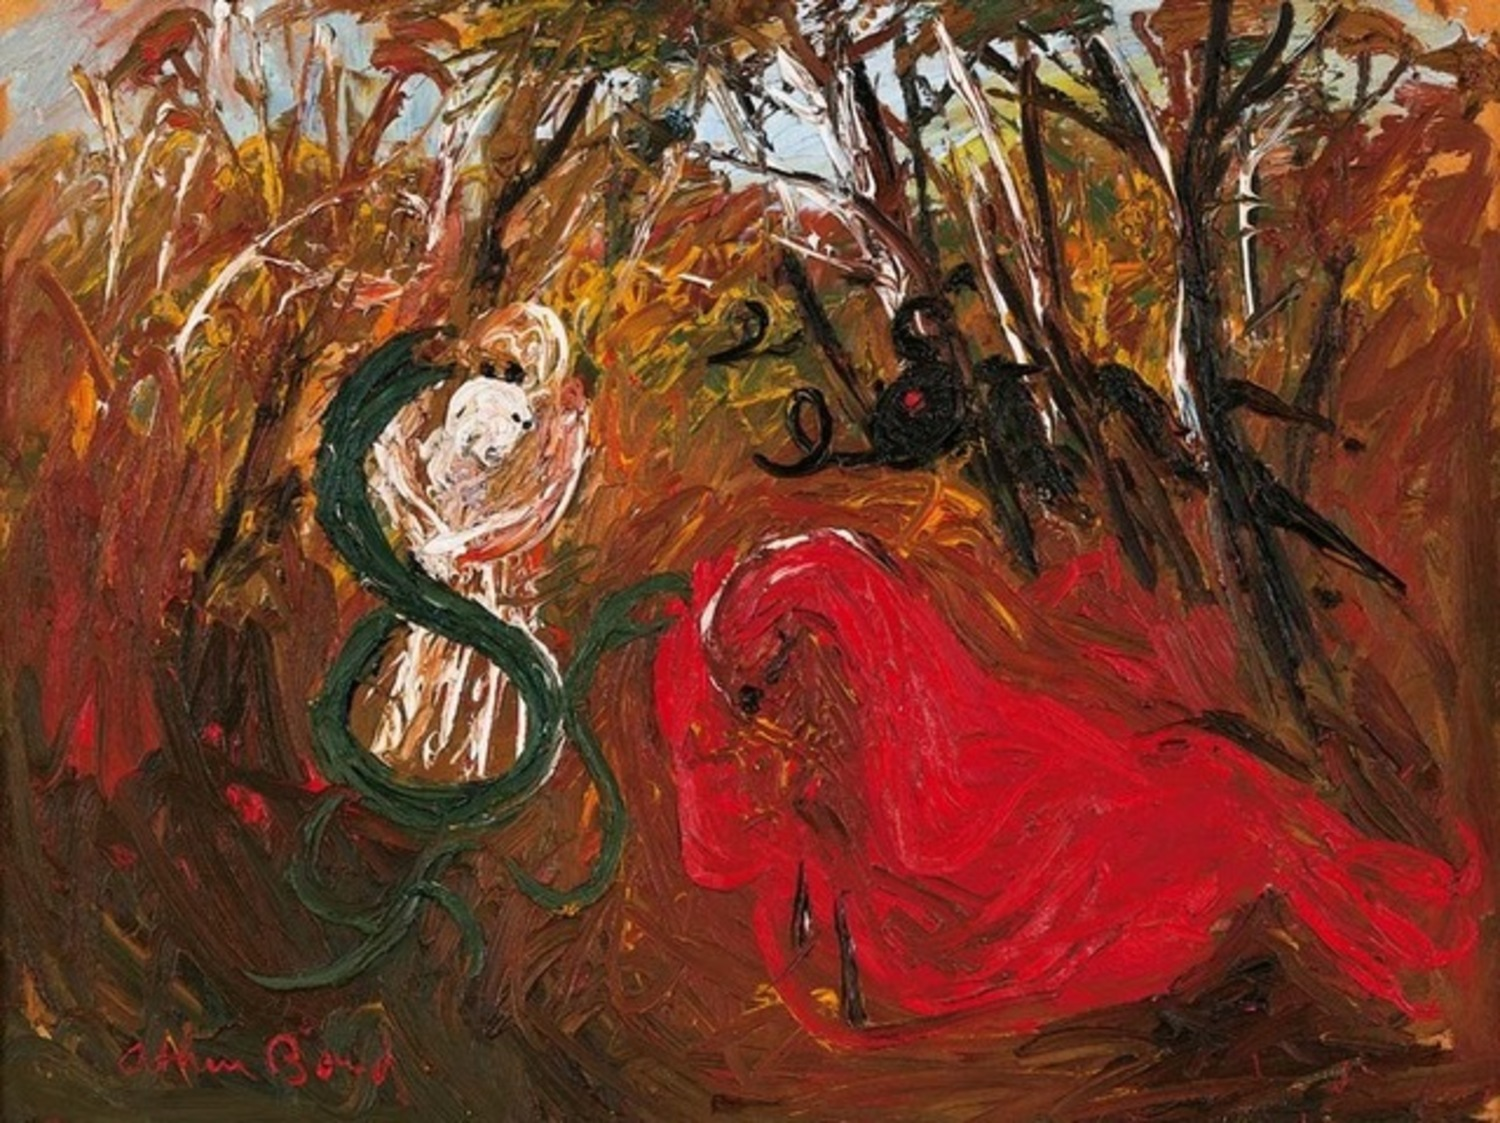 Prodigal Son in Bush, c. 1970